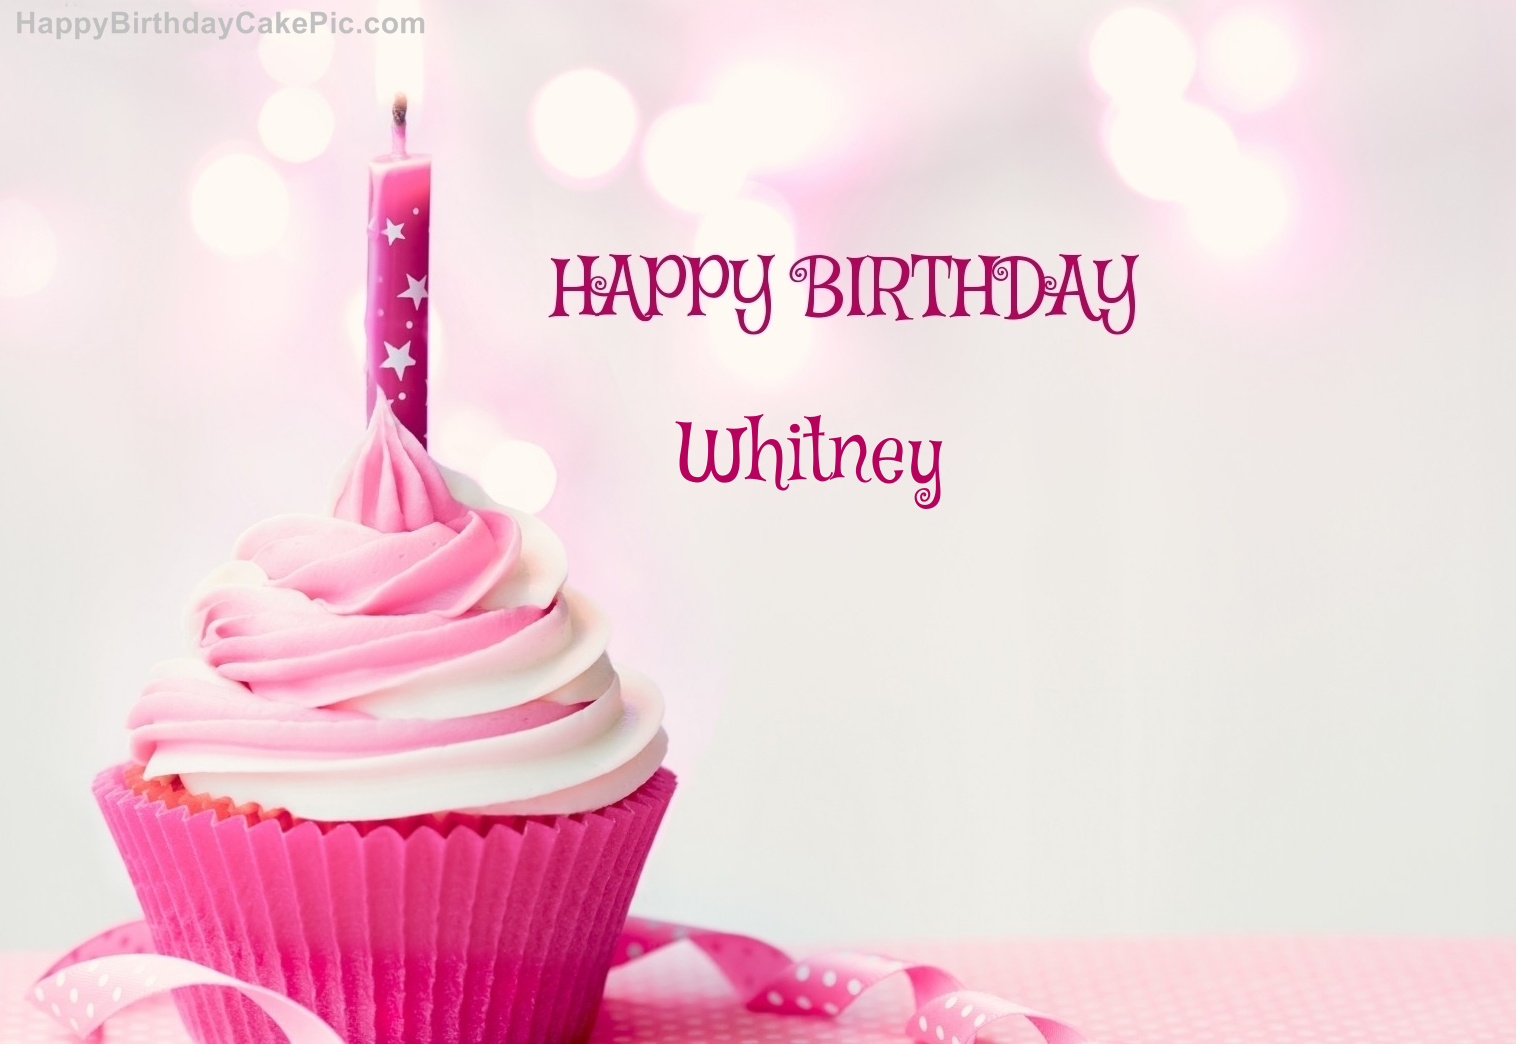 Happy Birthday Cupcake Candle Pink Cake For Whitney